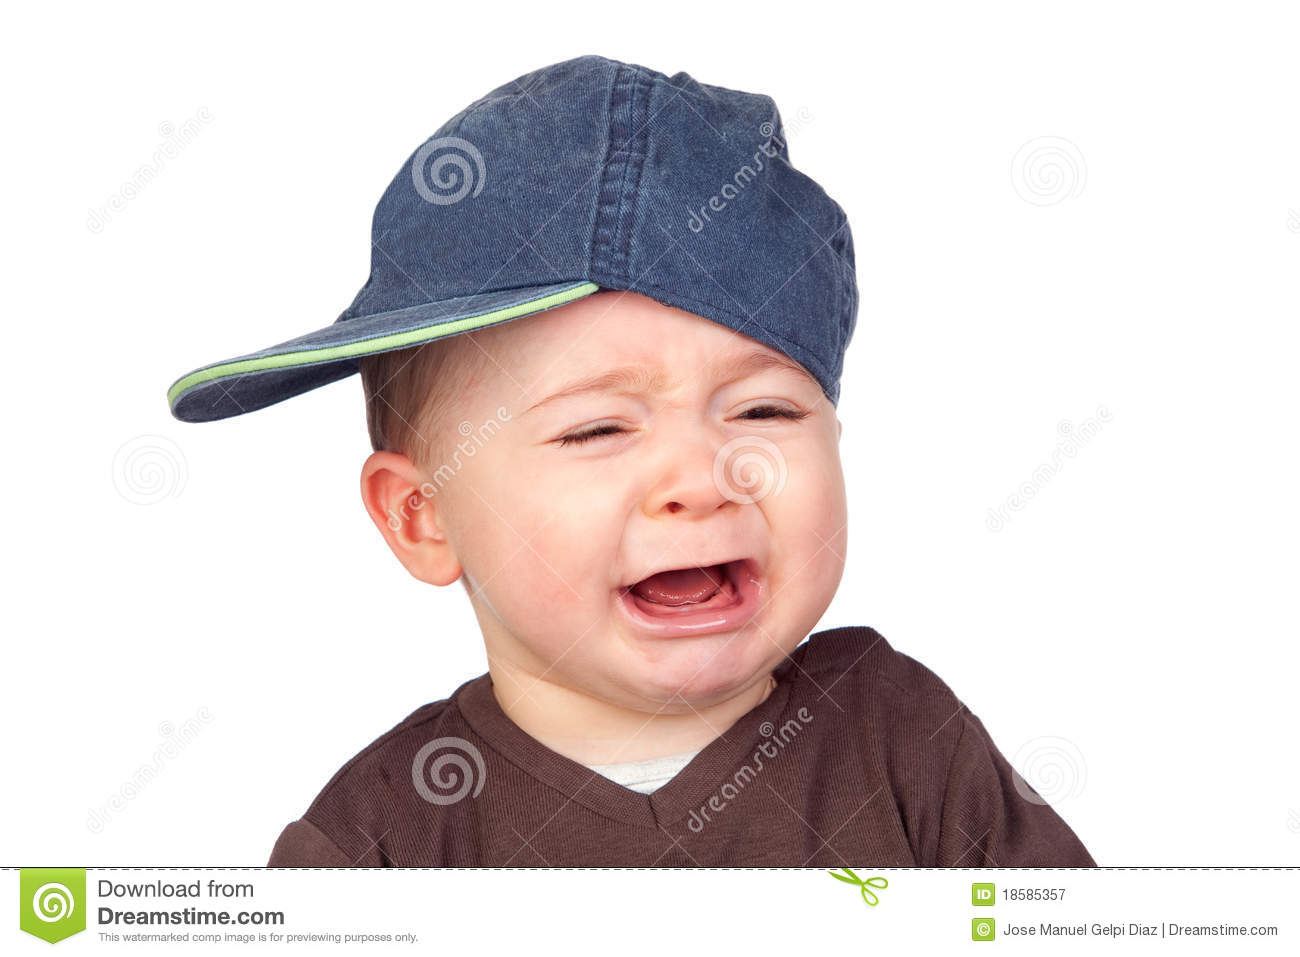 Beautiful baby crying with a cap royalty free stock photography 9f0d65f052a